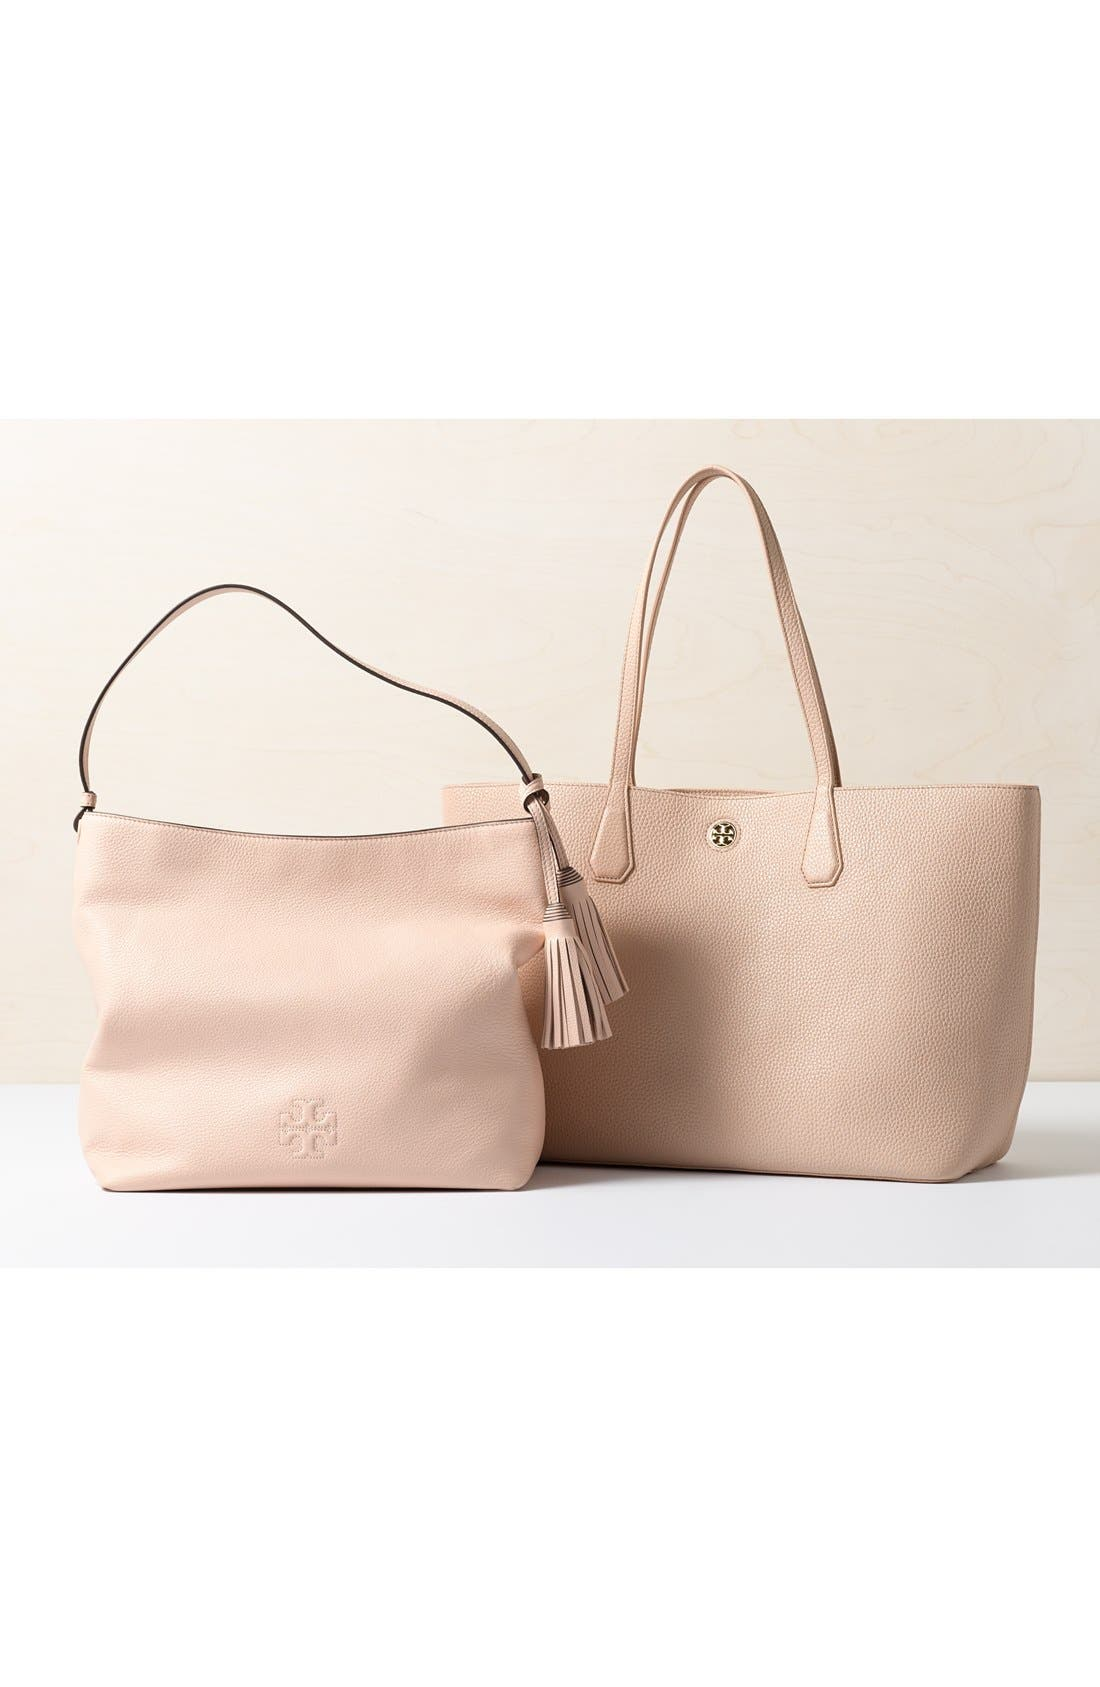 'Perry' Leather Tote,                             Alternate thumbnail 2, color,                             001